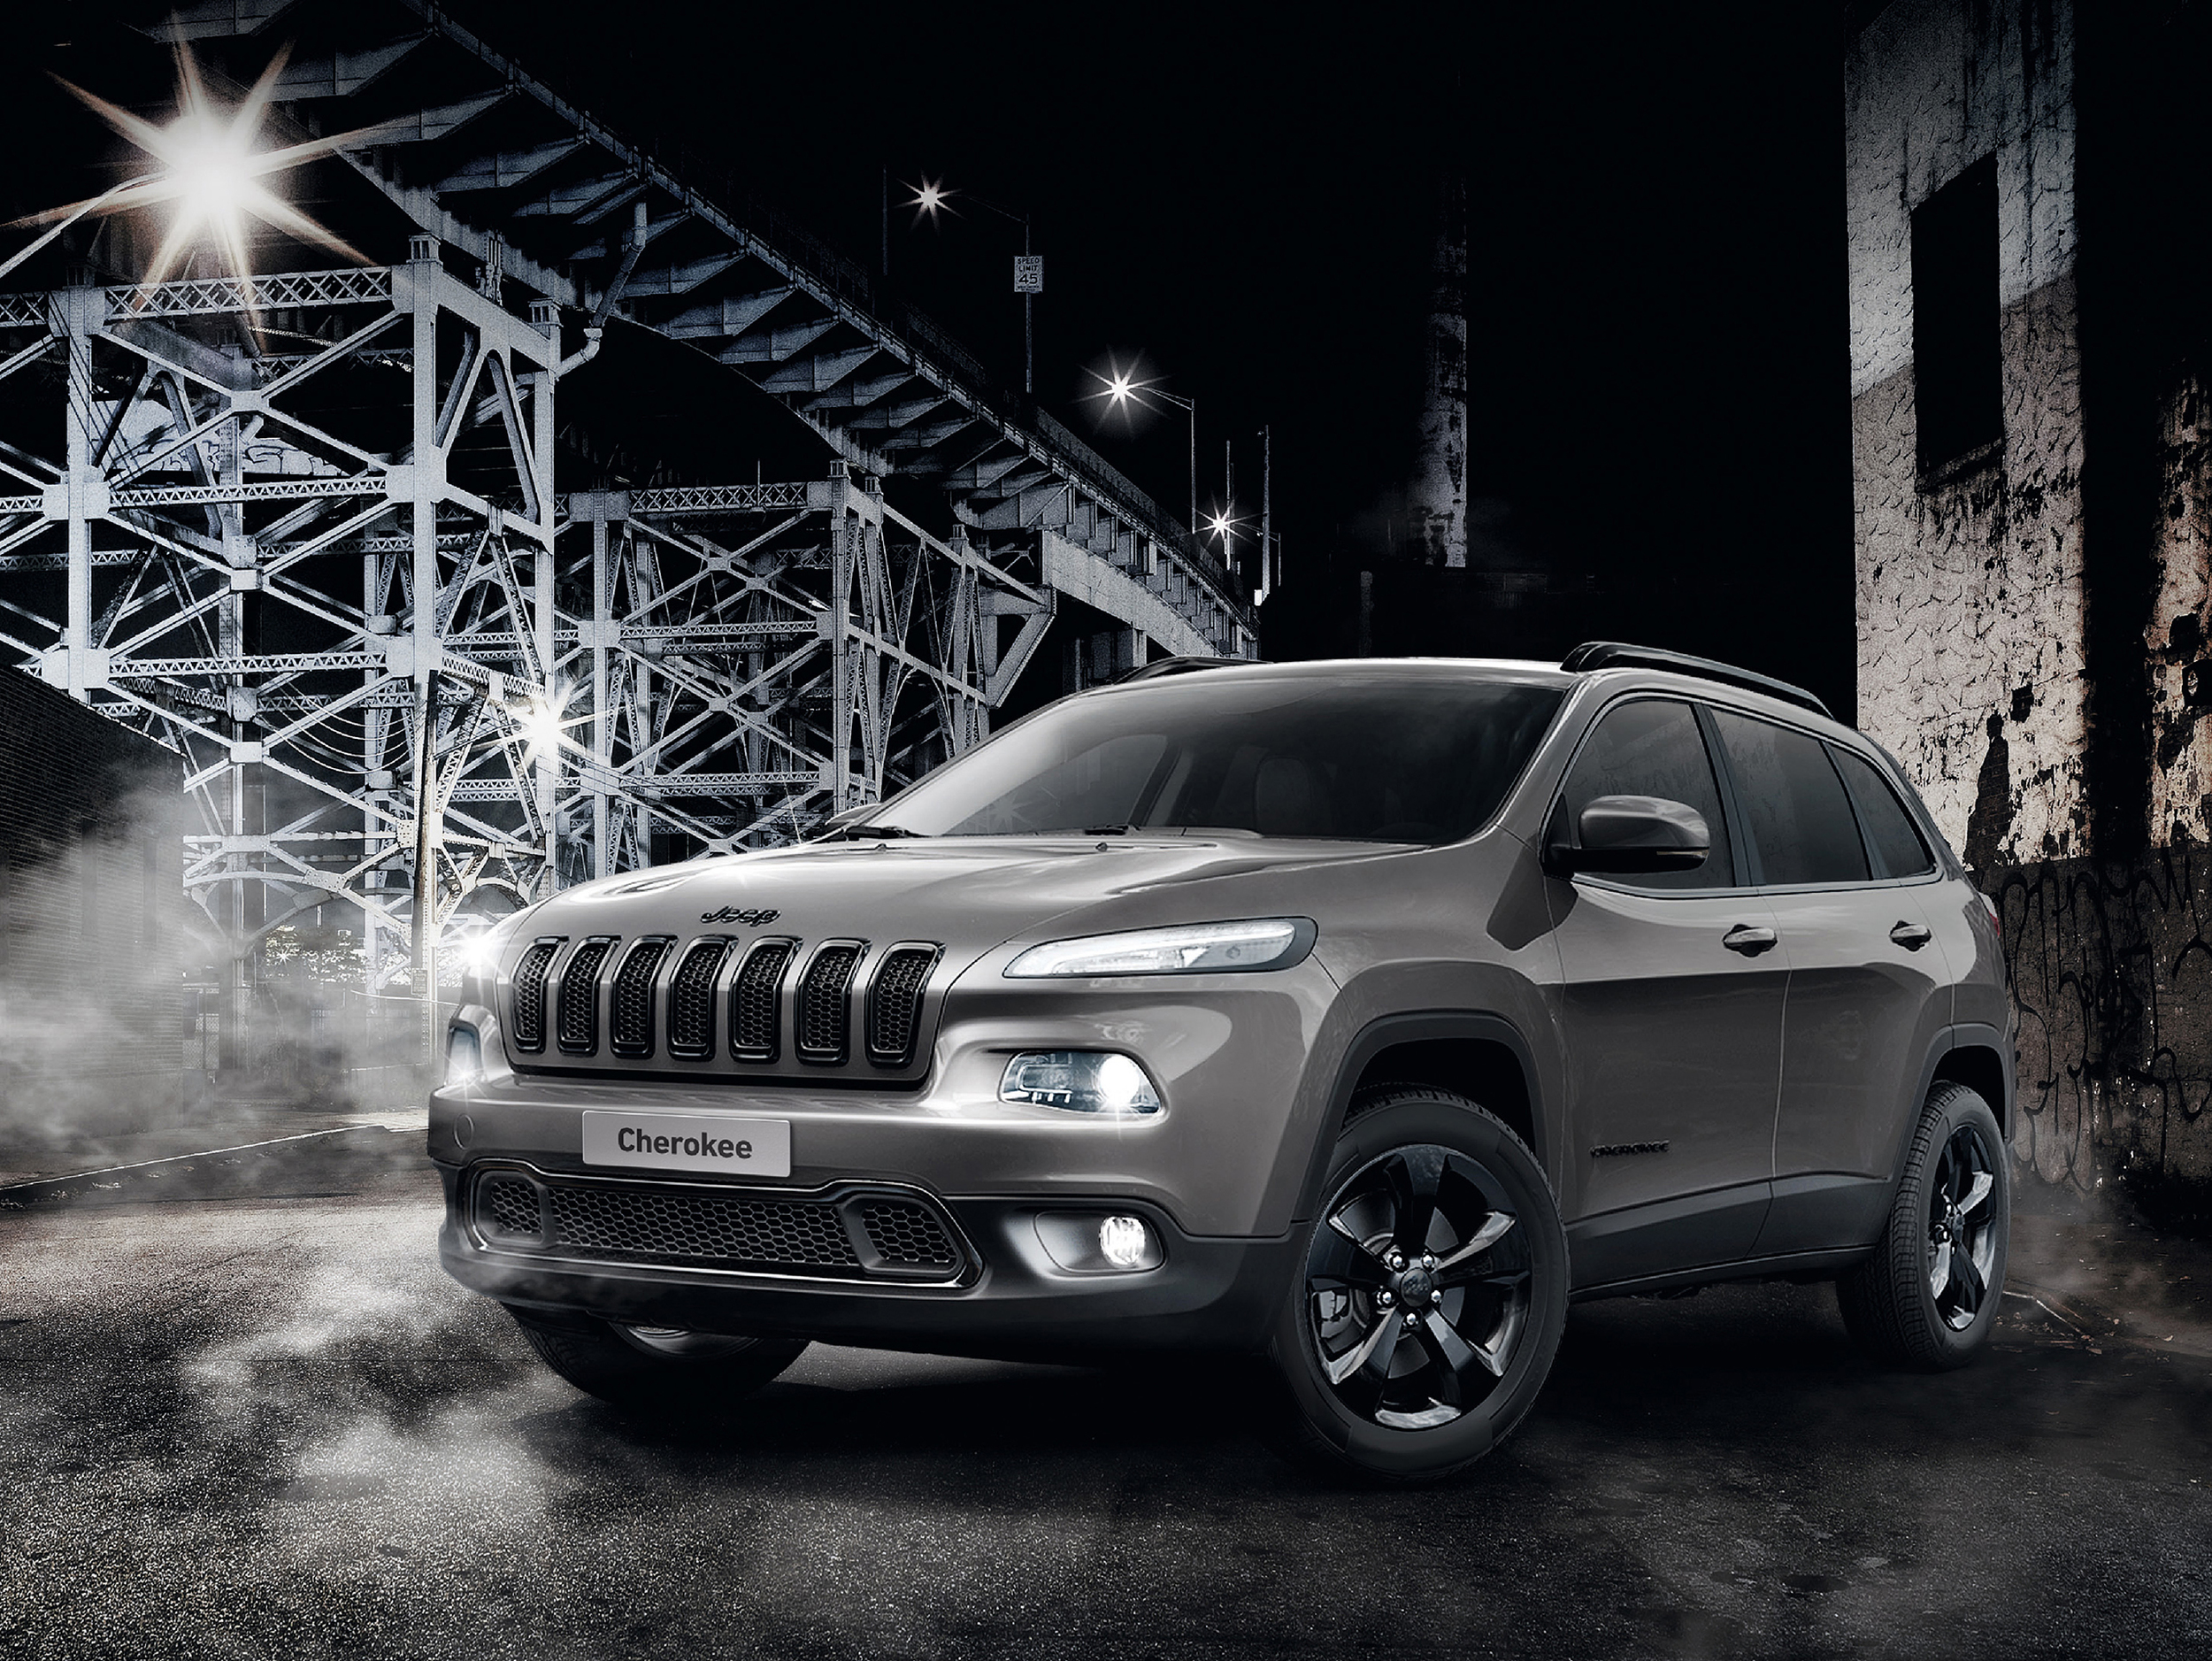 New Jeep 'Night Eagle' Cherokee